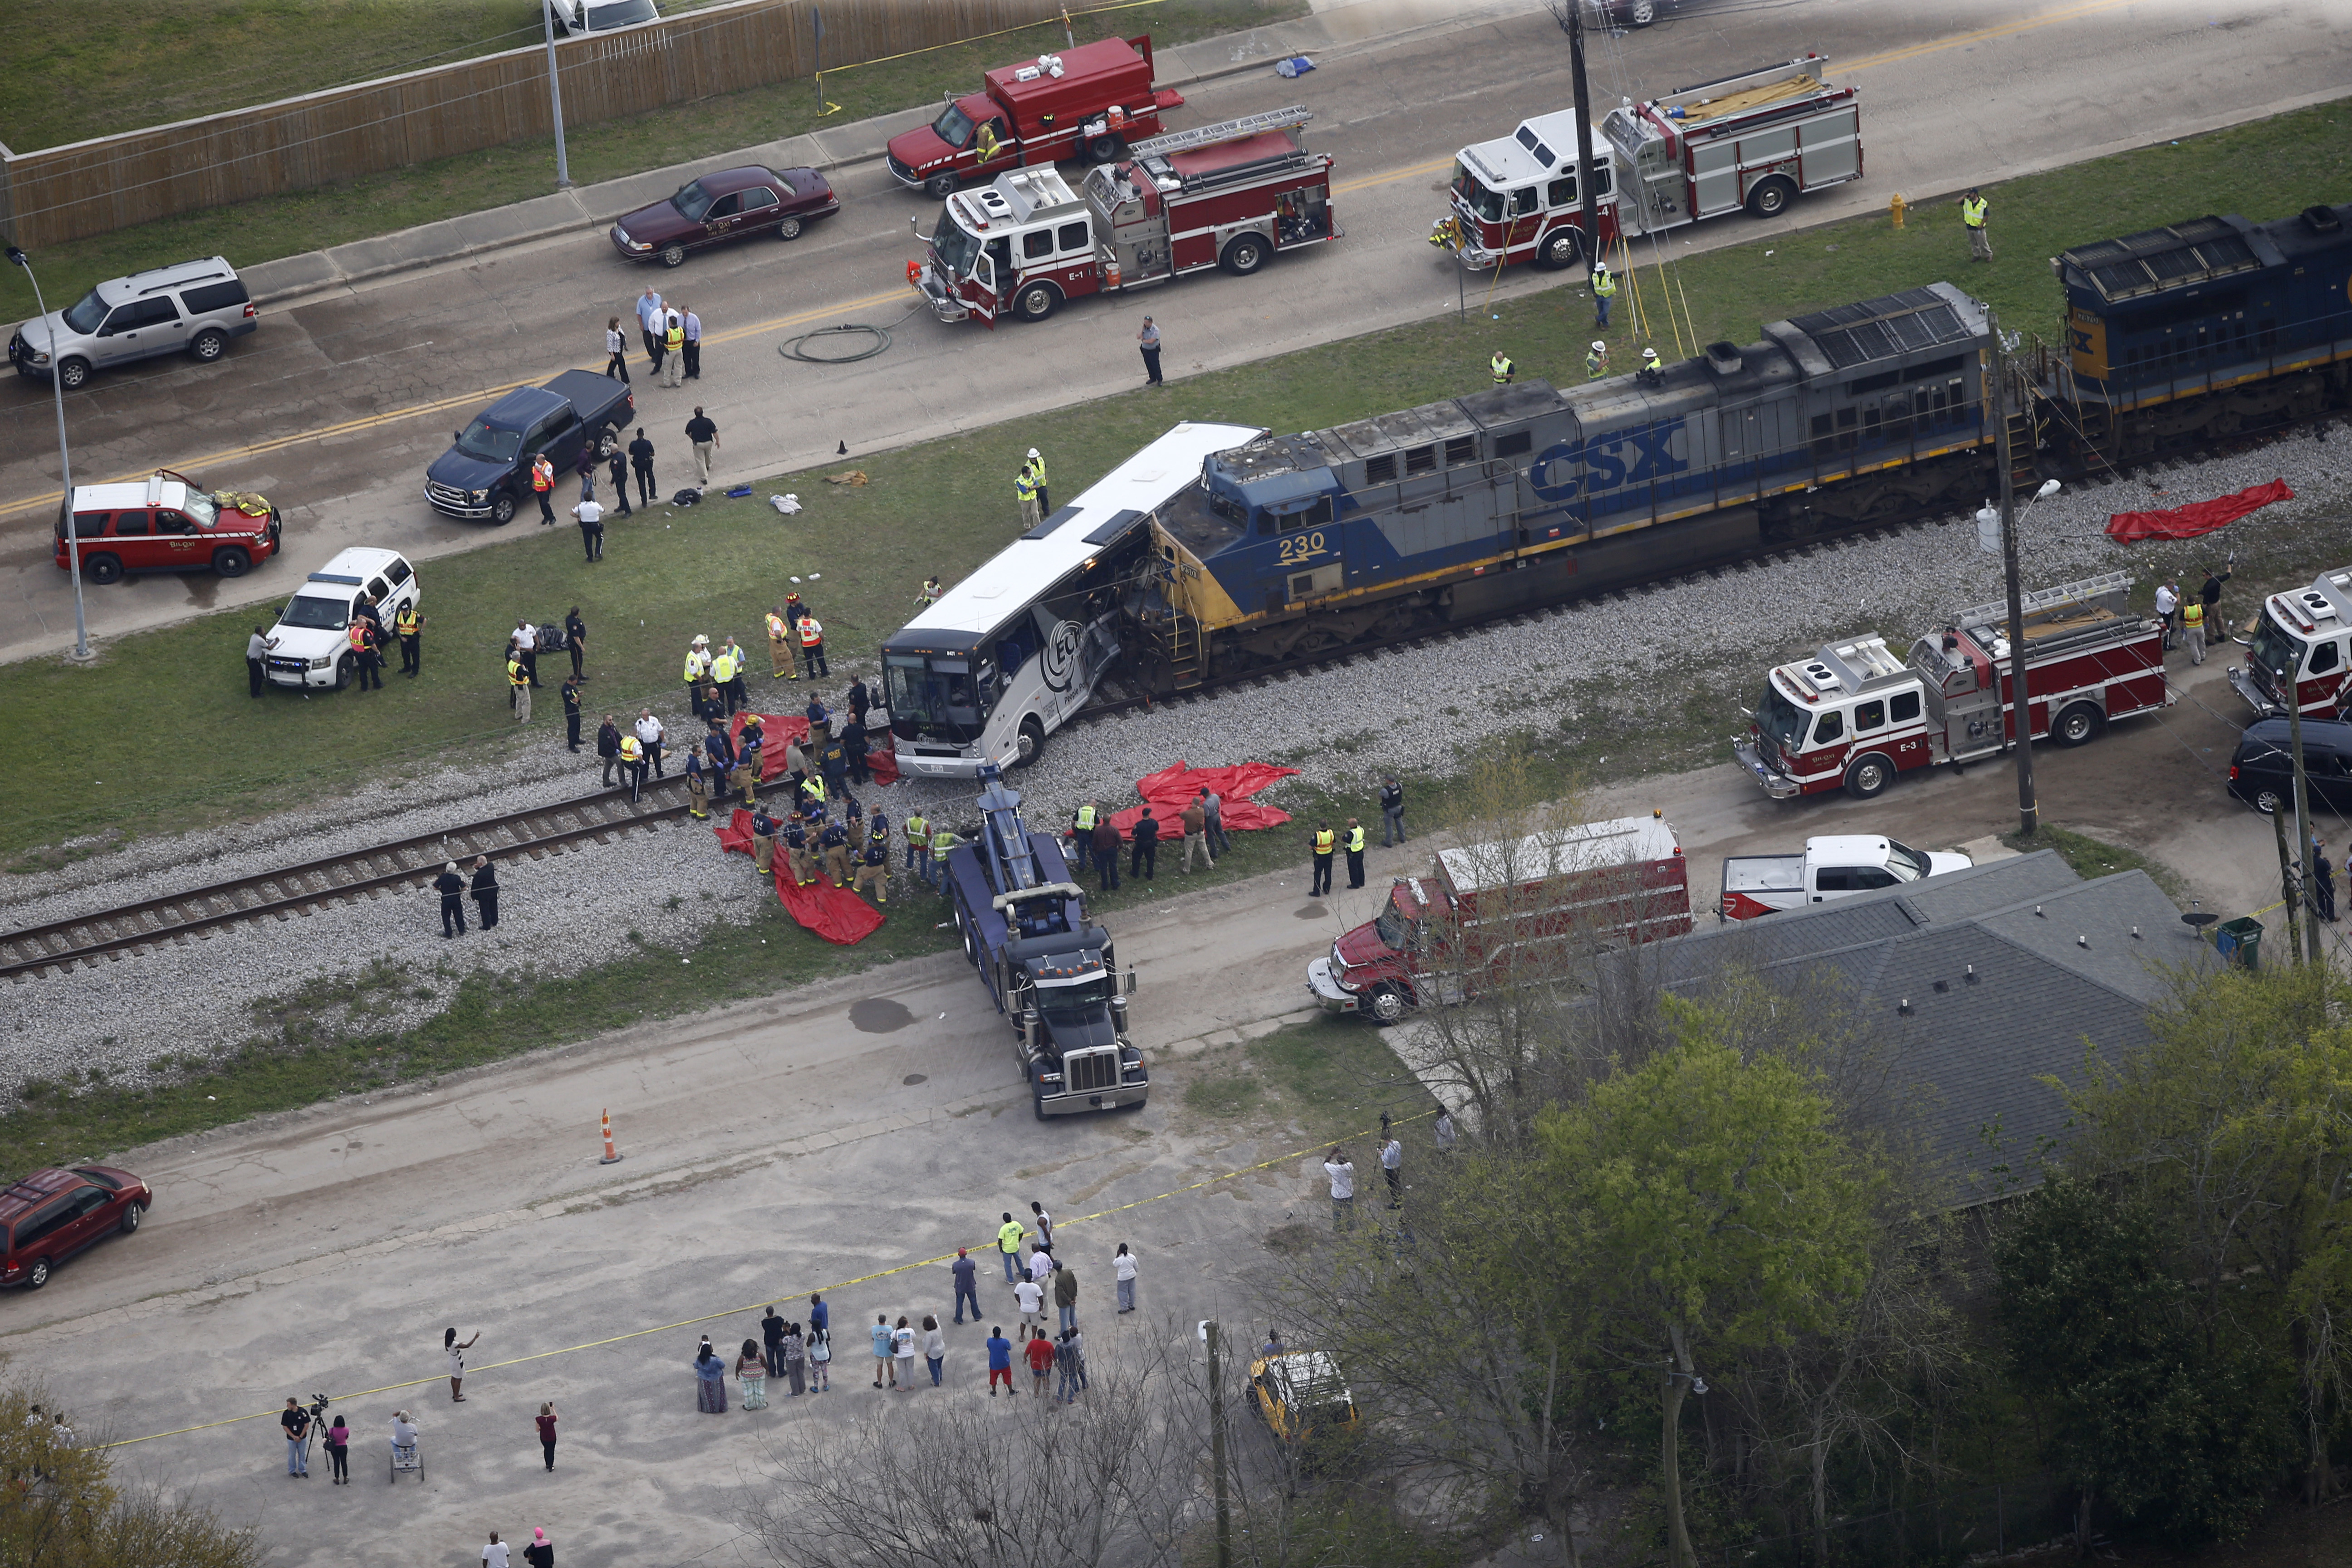 Responders works the scene where a train hit a bus in Biloxi, Miss., on March 7, 2017. (AP Photo/Gerald Herbert)